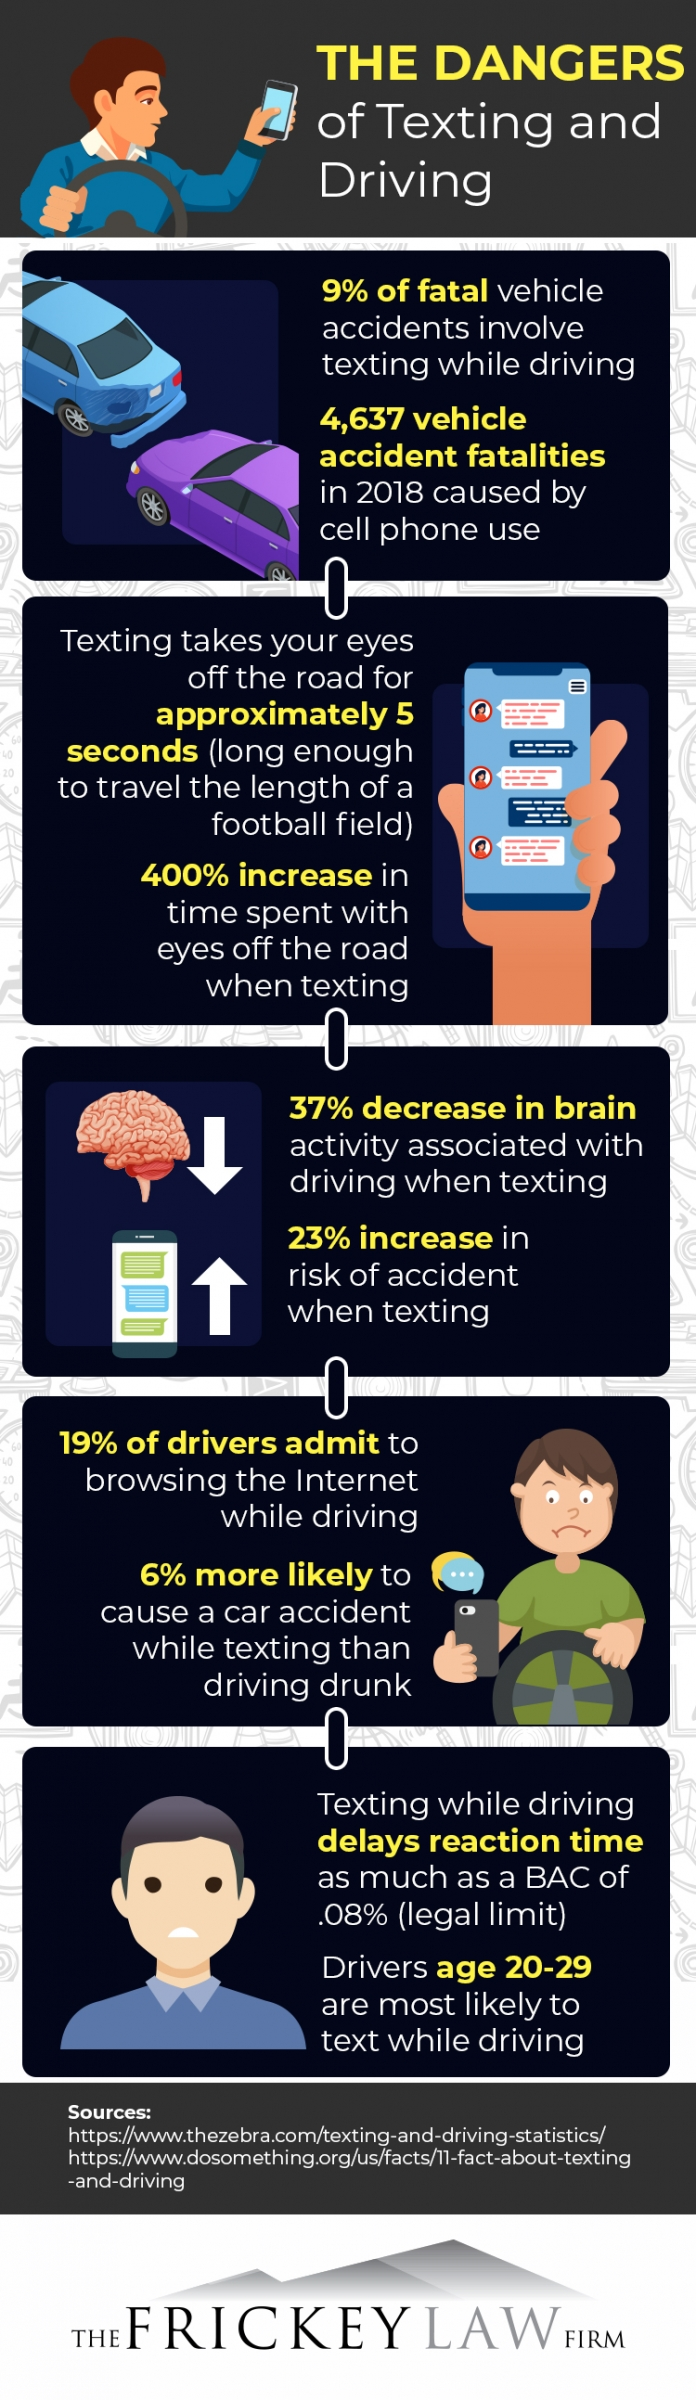 infographic discussing the dangers of texting and driving